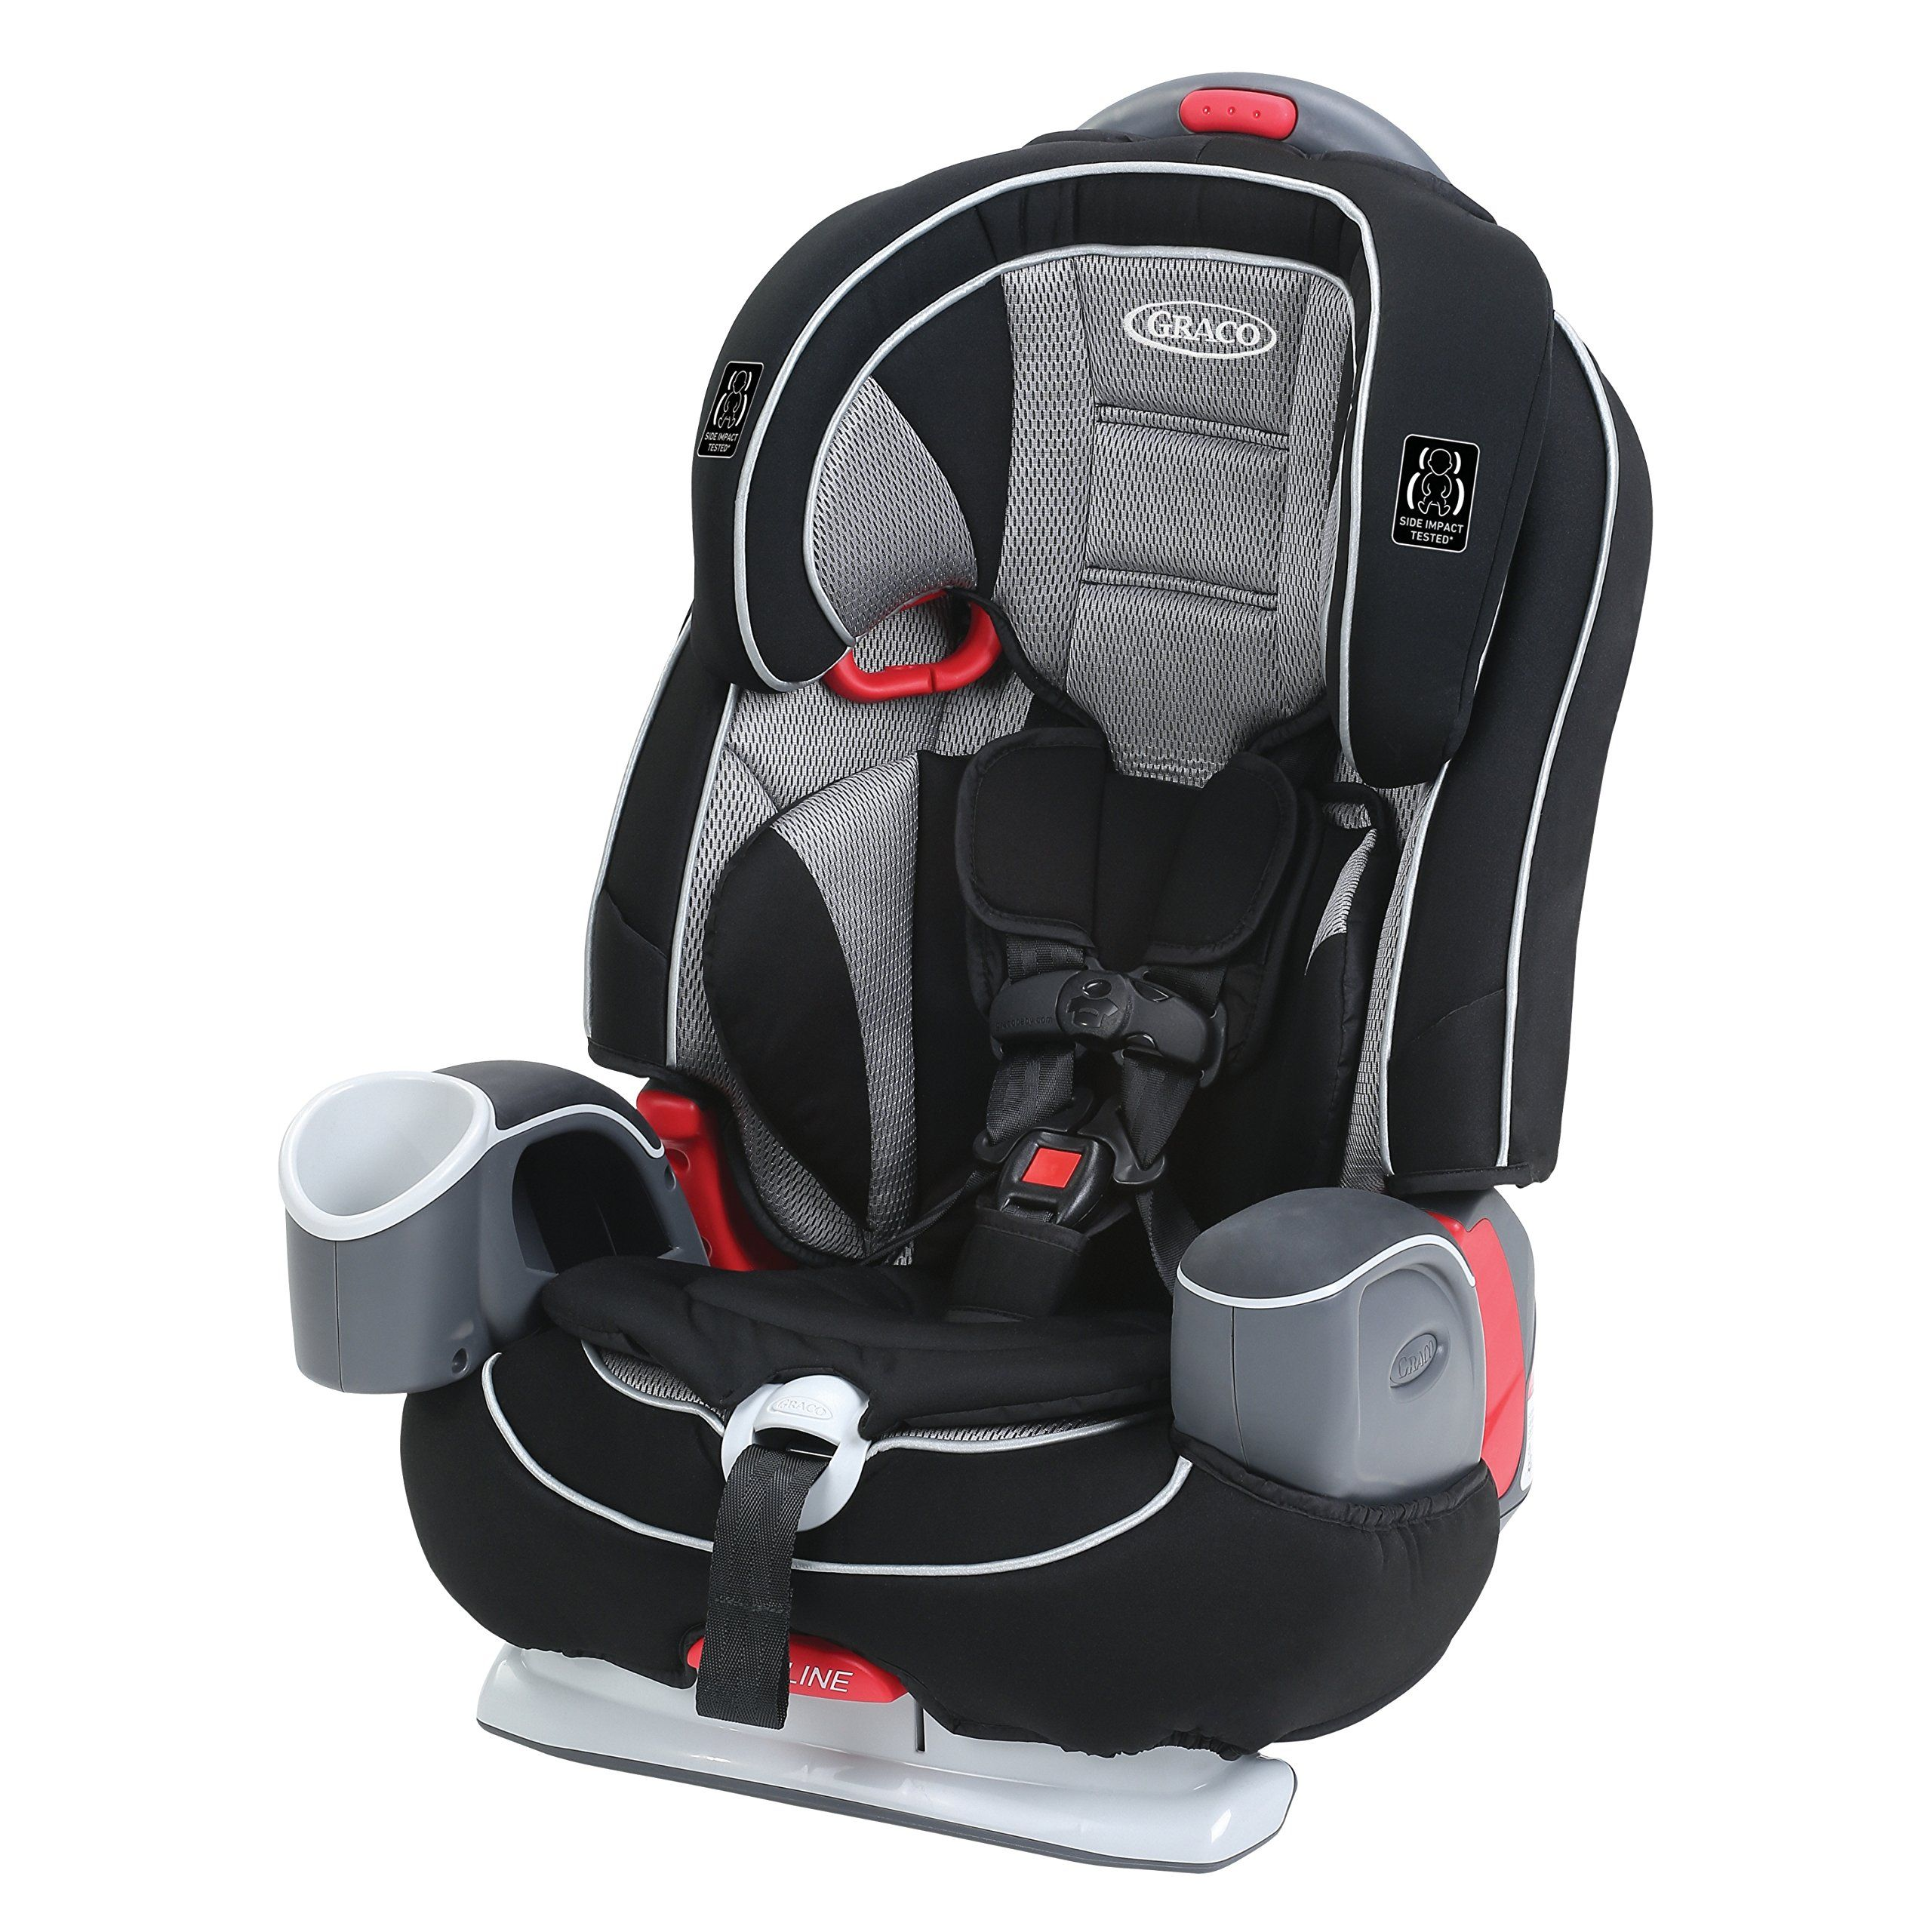 Graco Nautilus 3 Position Recline And In 1 Harness Boosters Booster Backless High Back What More Do You Need